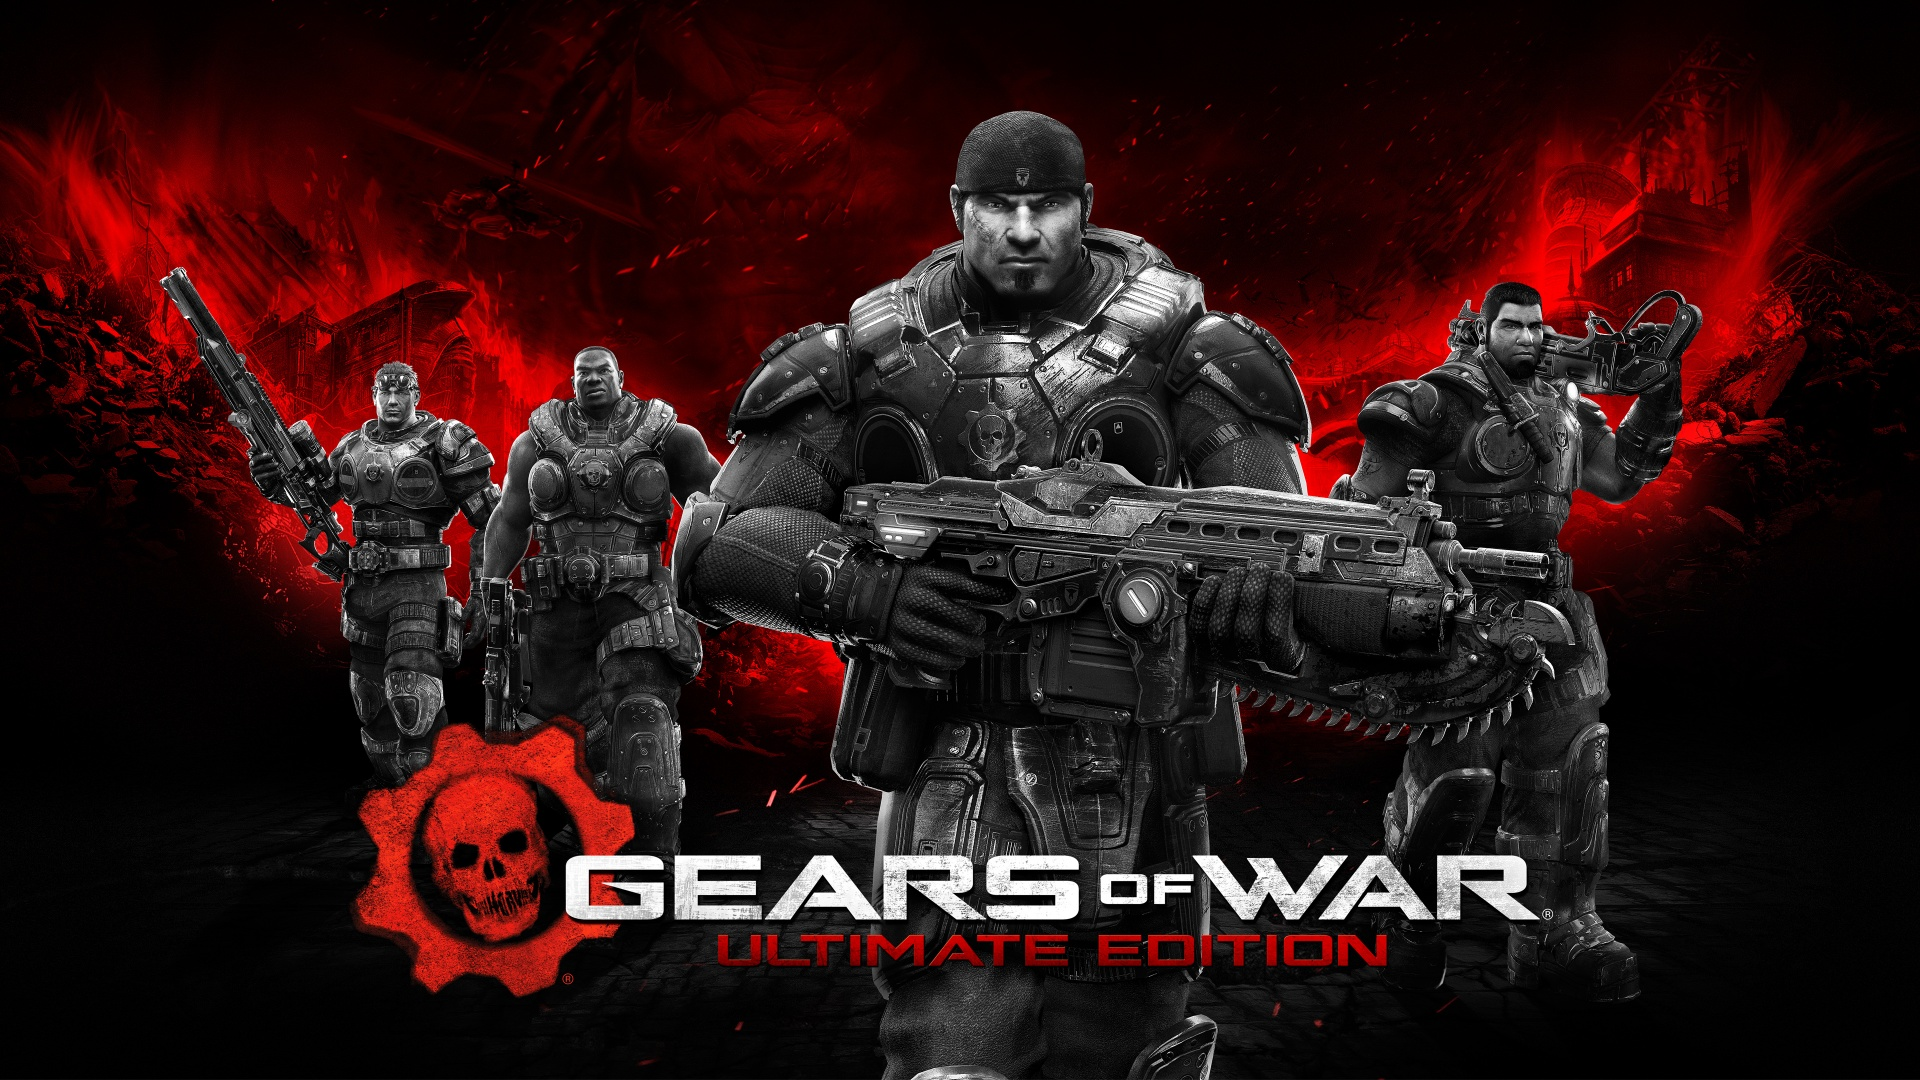 Surprise! Gears of War Ultimate Edition is now Available on PC!